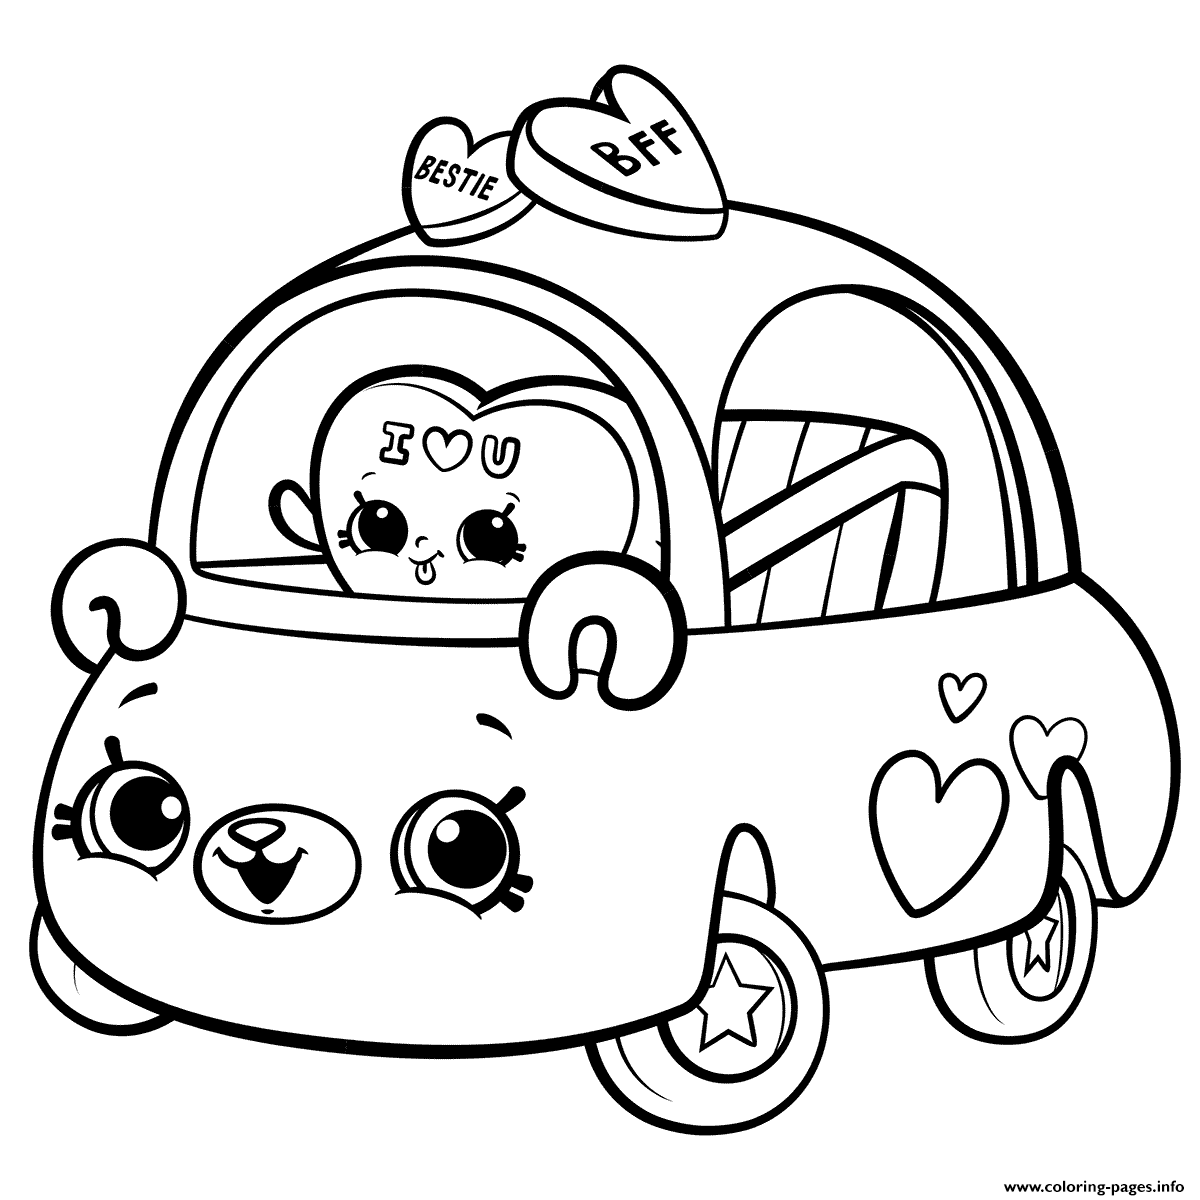 Print Cutie Cars For Girls Coloring Pages Coloring Pages For Girls Cute Coloring Pages Coloring Books